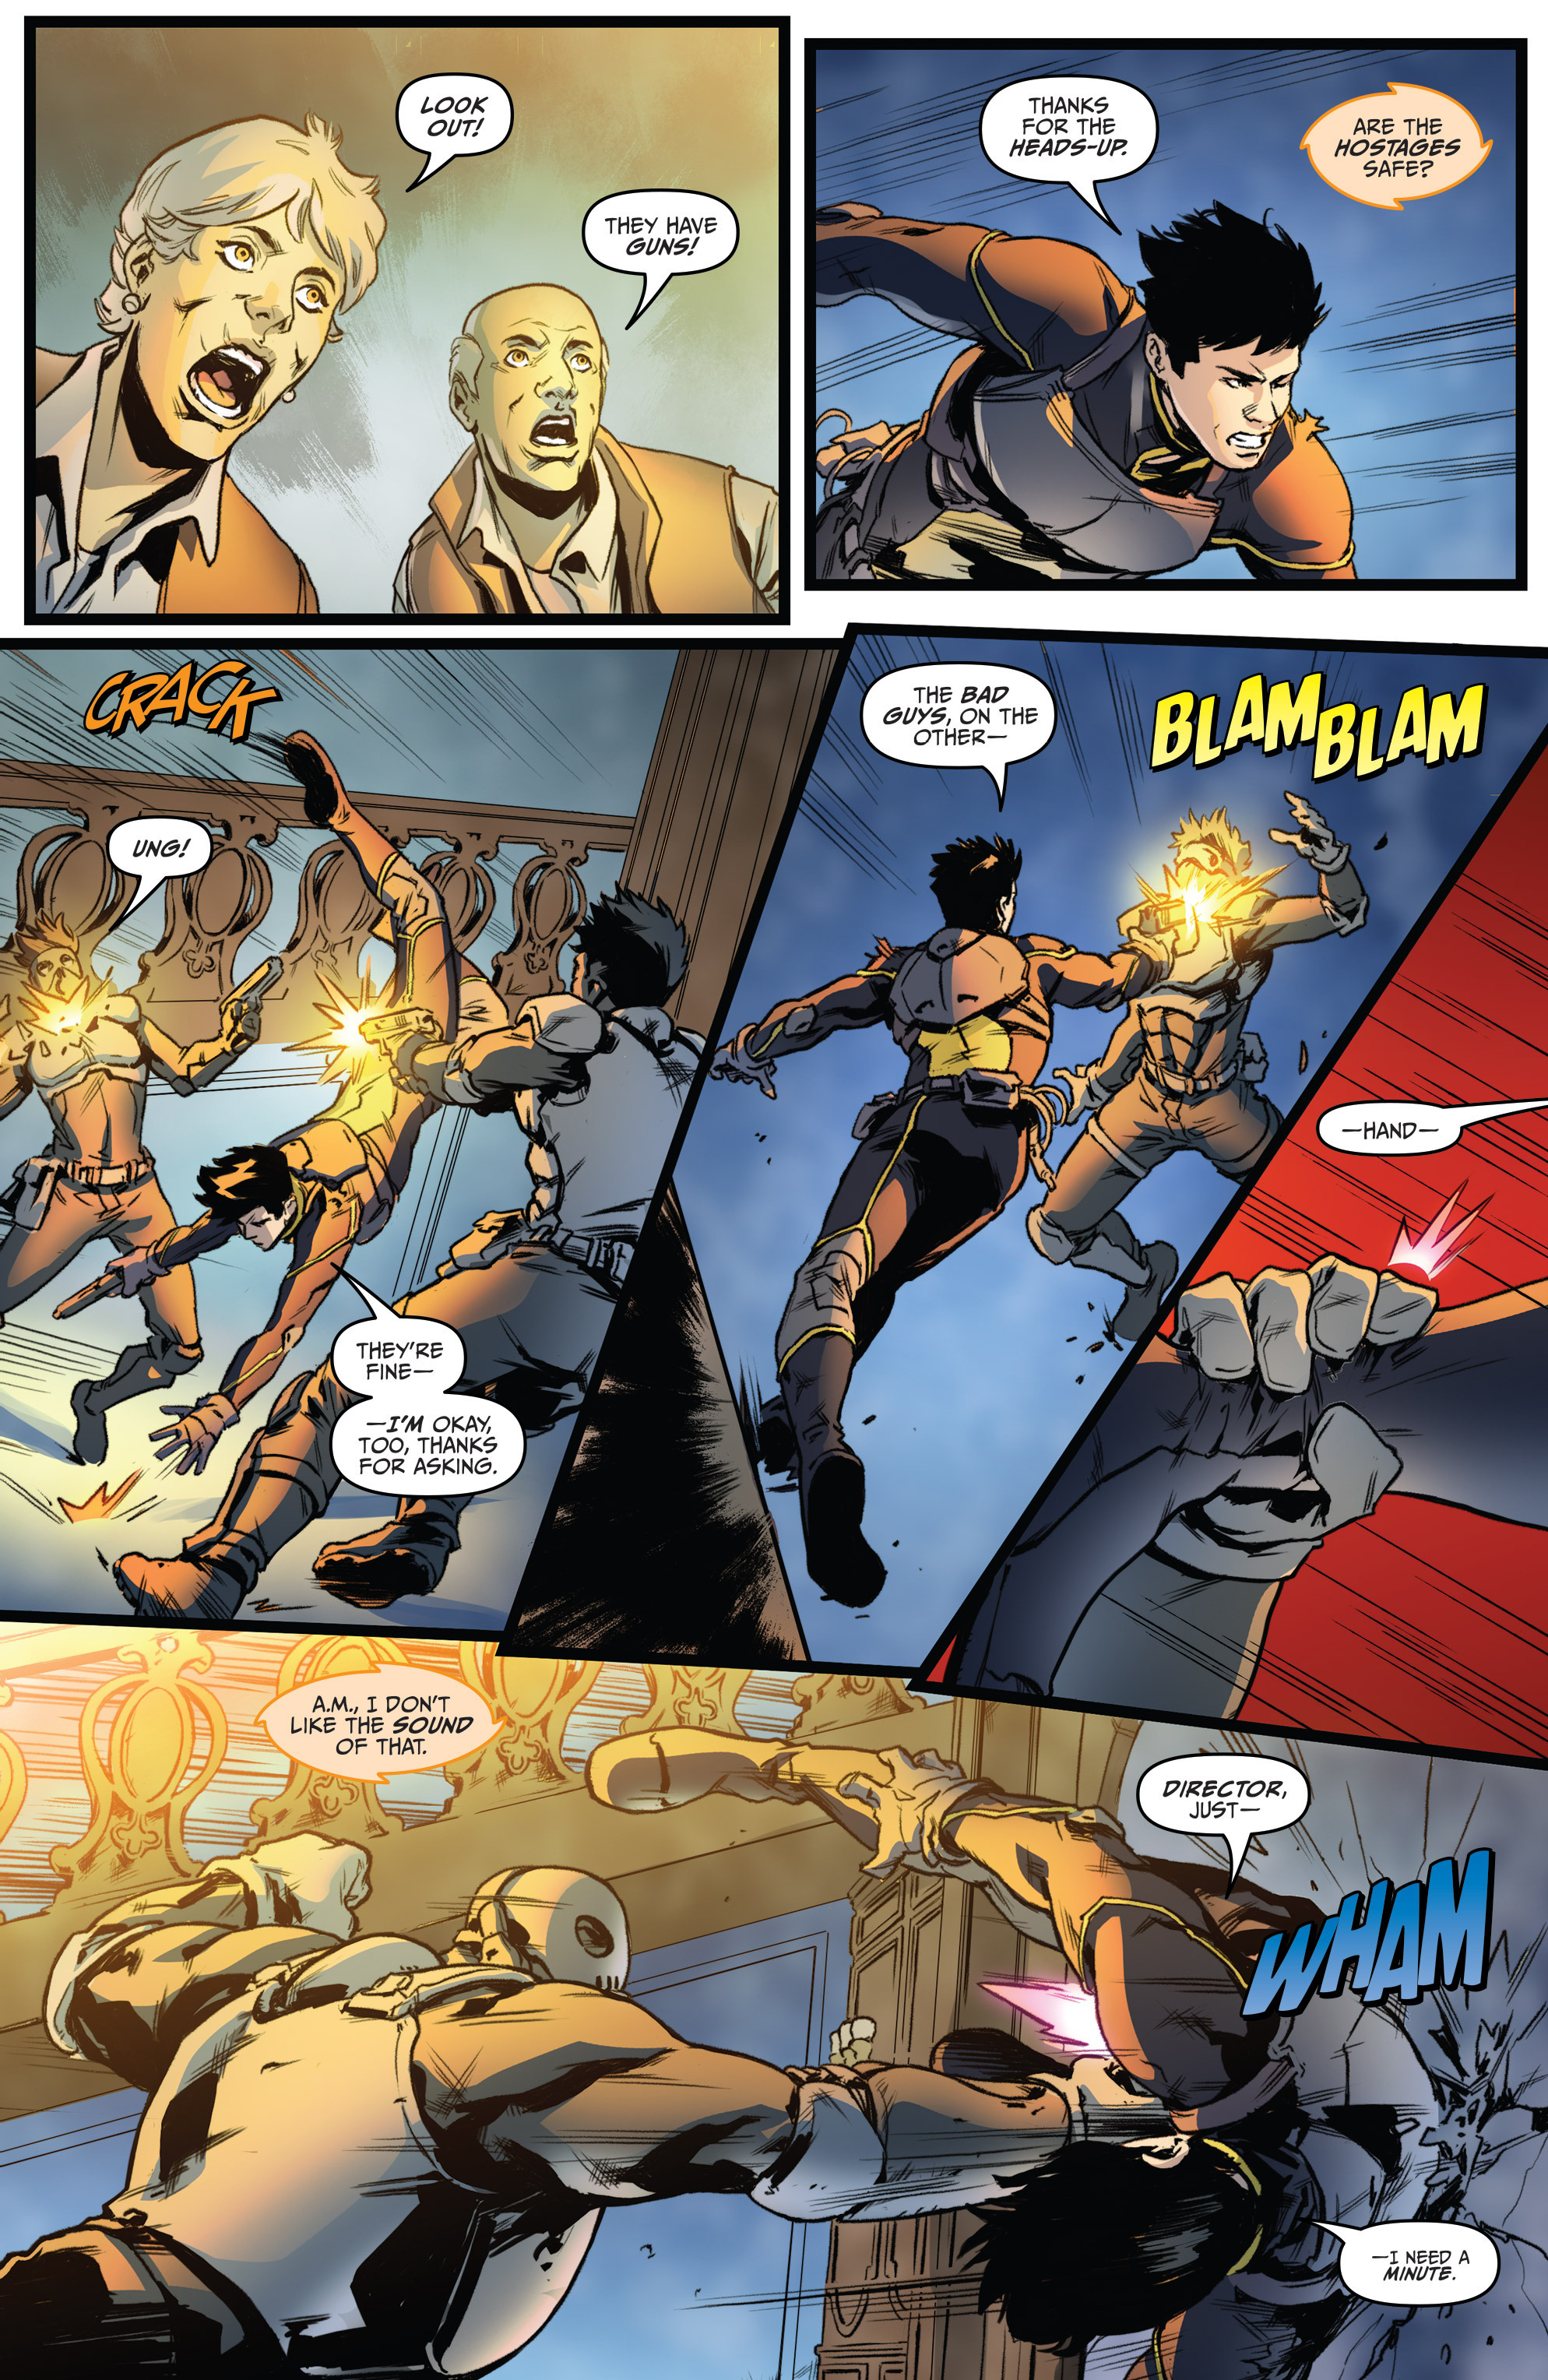 Read online Action Man comic -  Issue #2 - 8